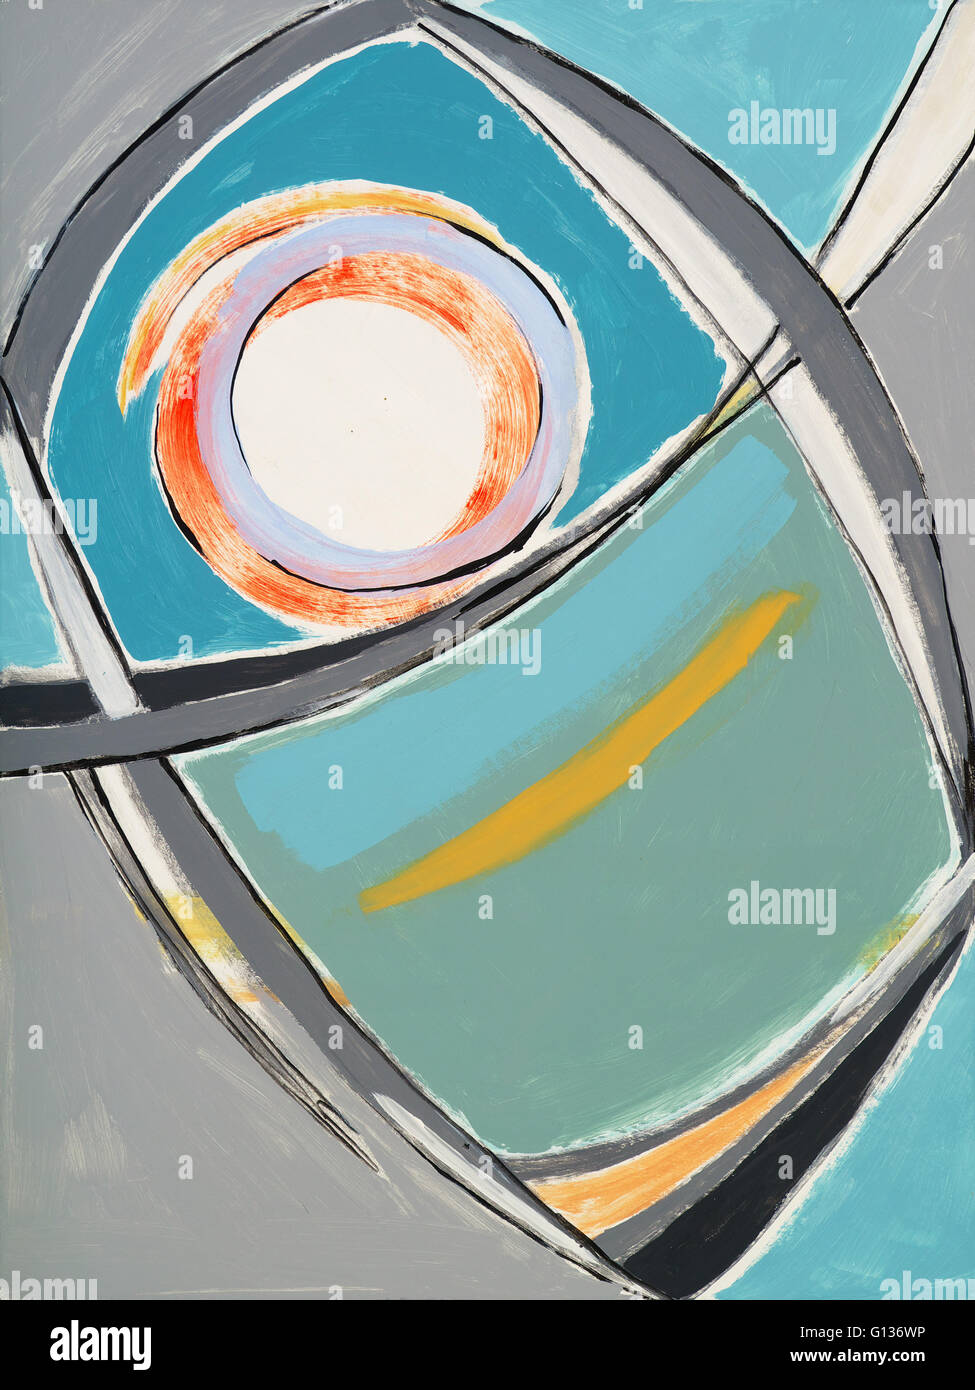 An abstract painting, typical of 1950s and 60s modernism - Stock Image